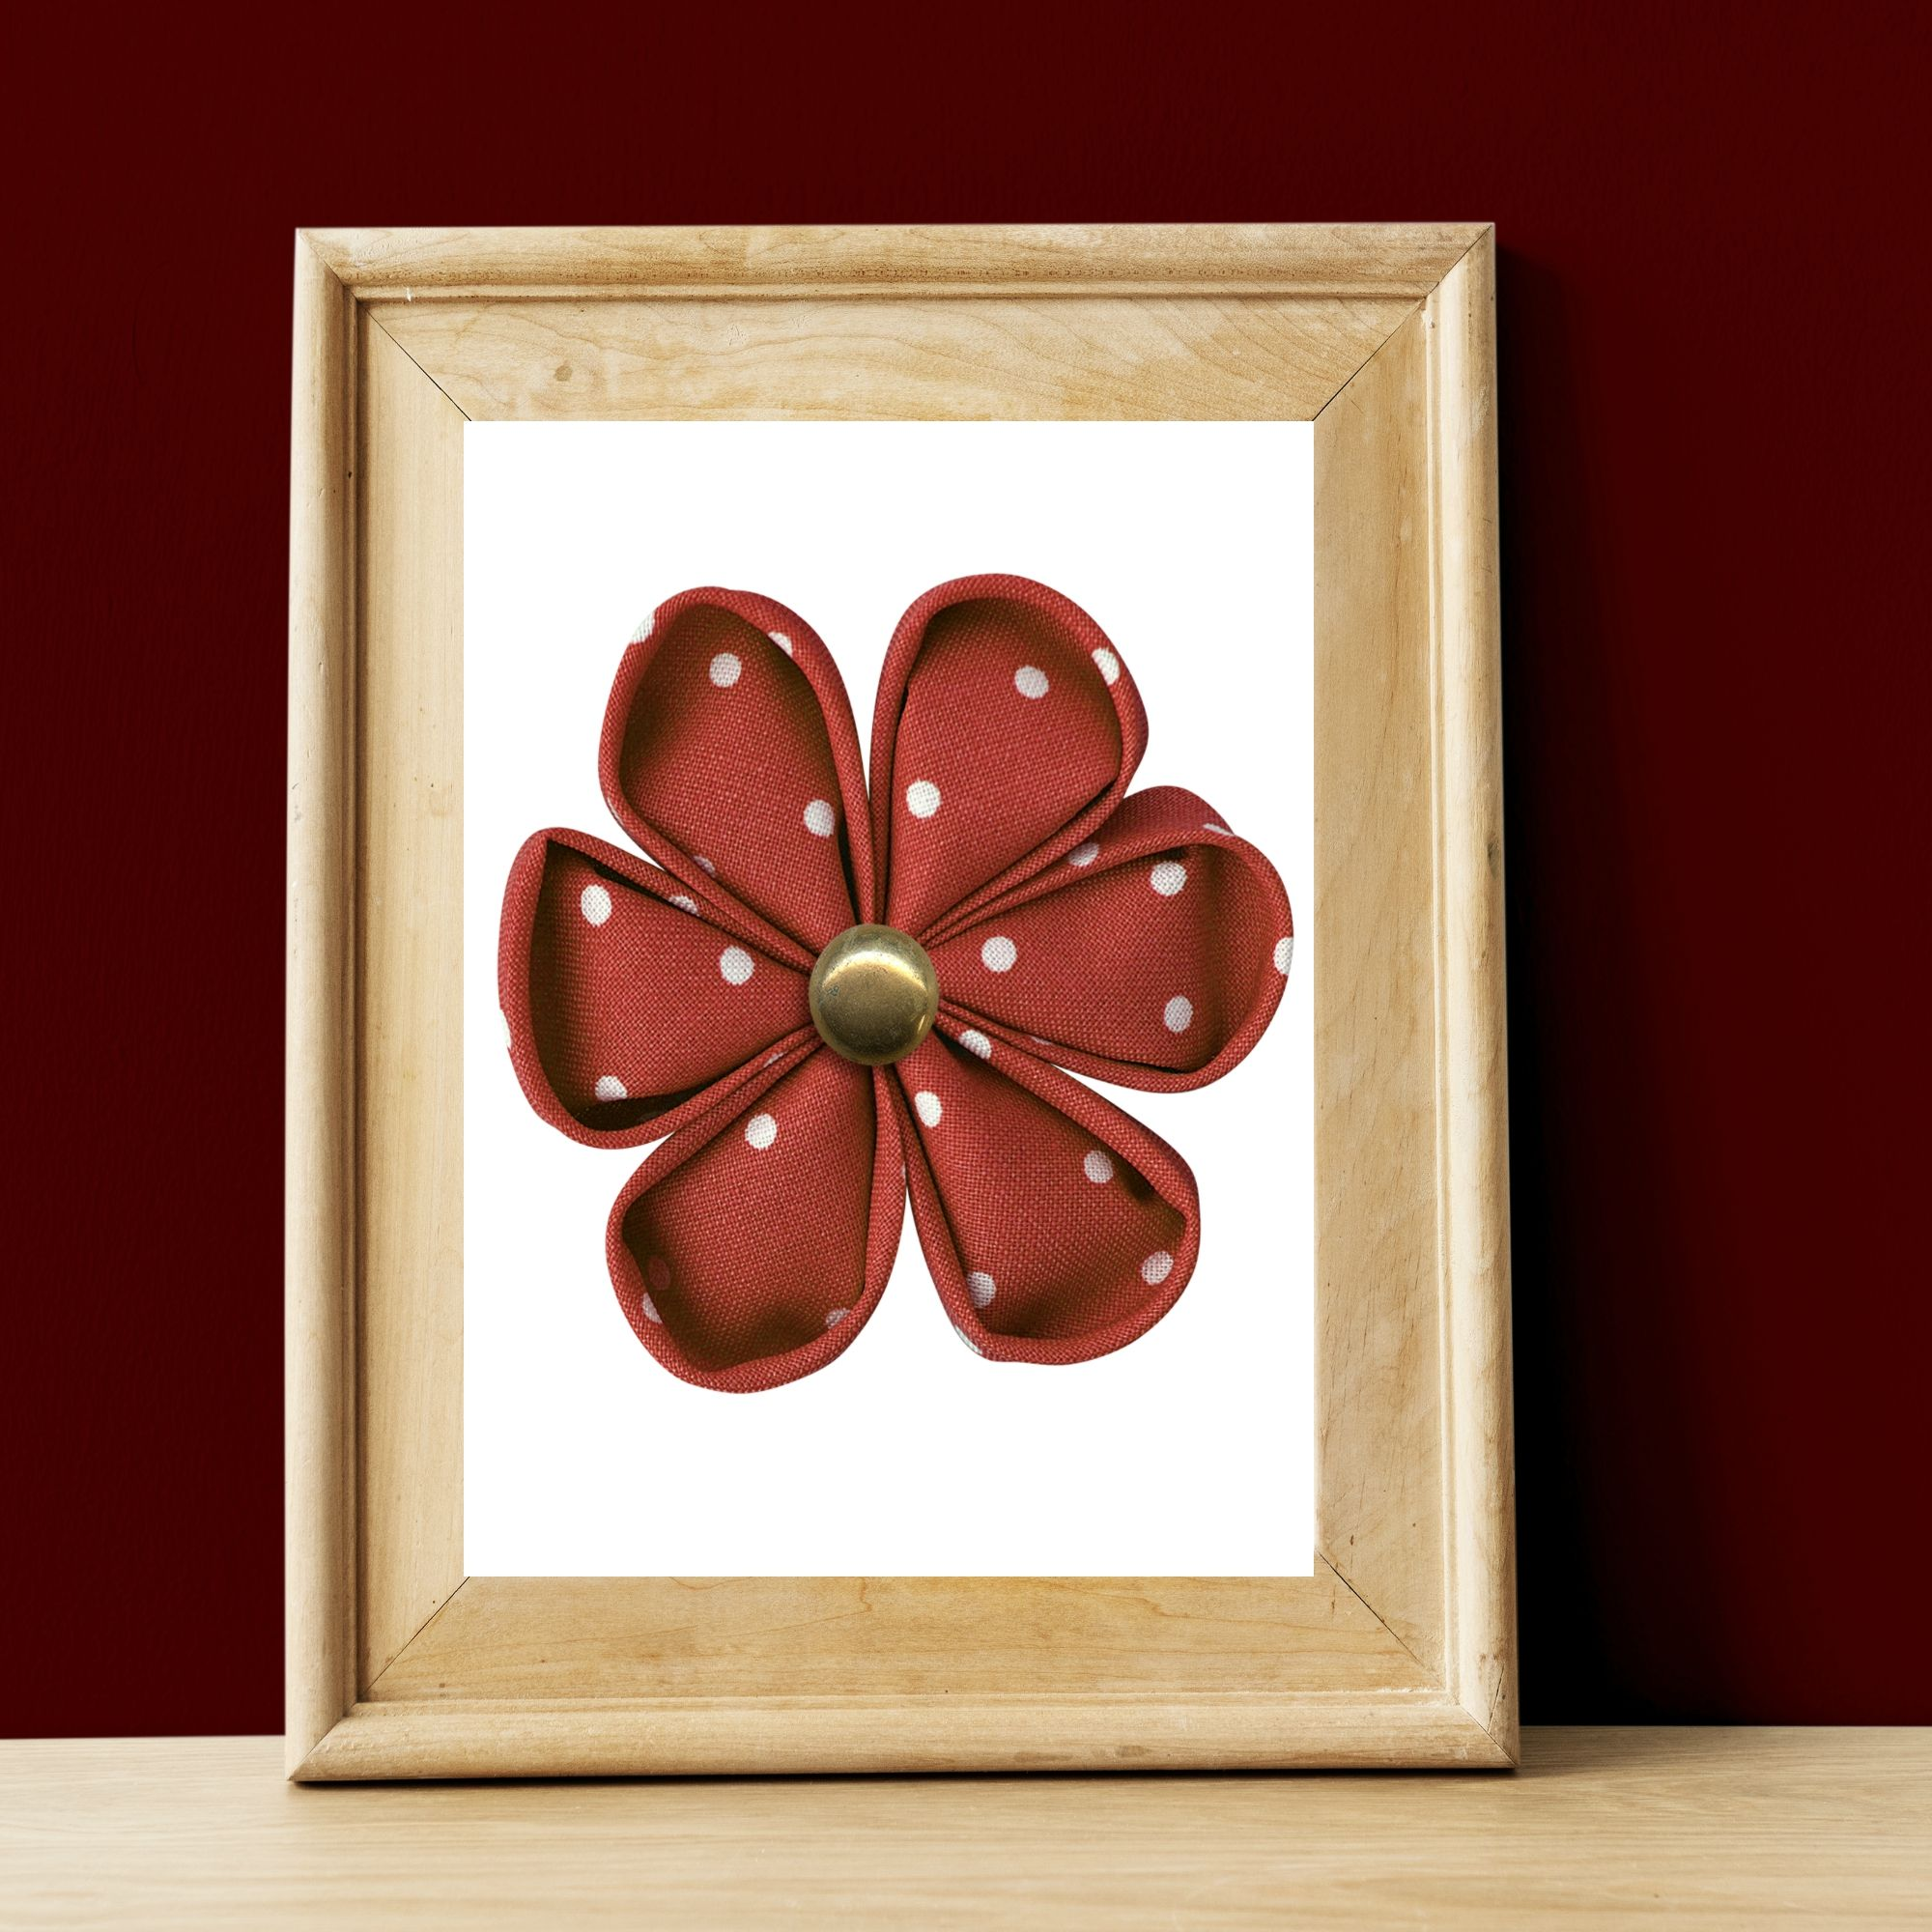 Burgundy dotted flower six petals with brass center in